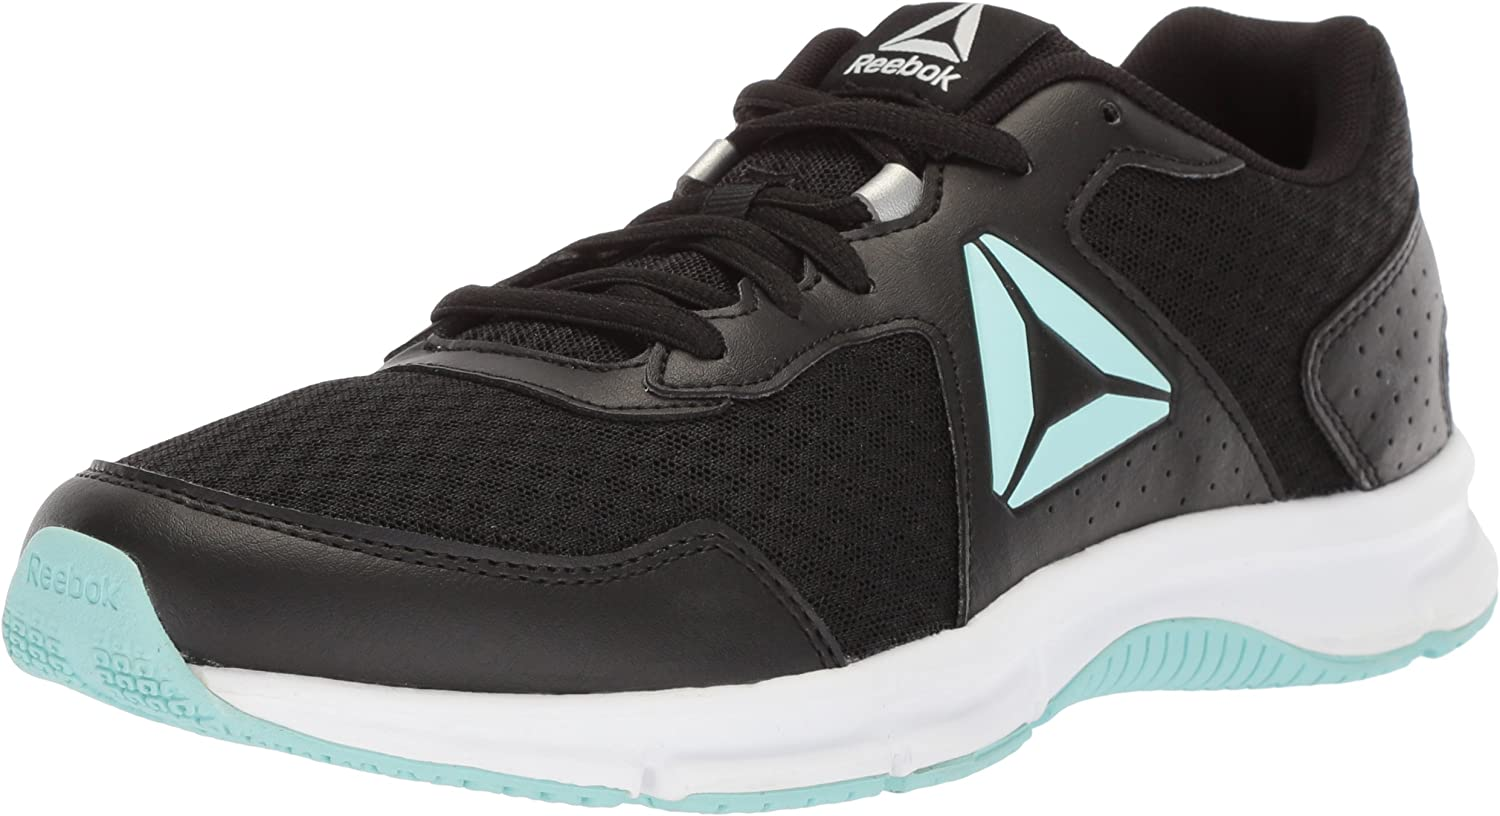 Reebok Women s Express Runner Running Shoe